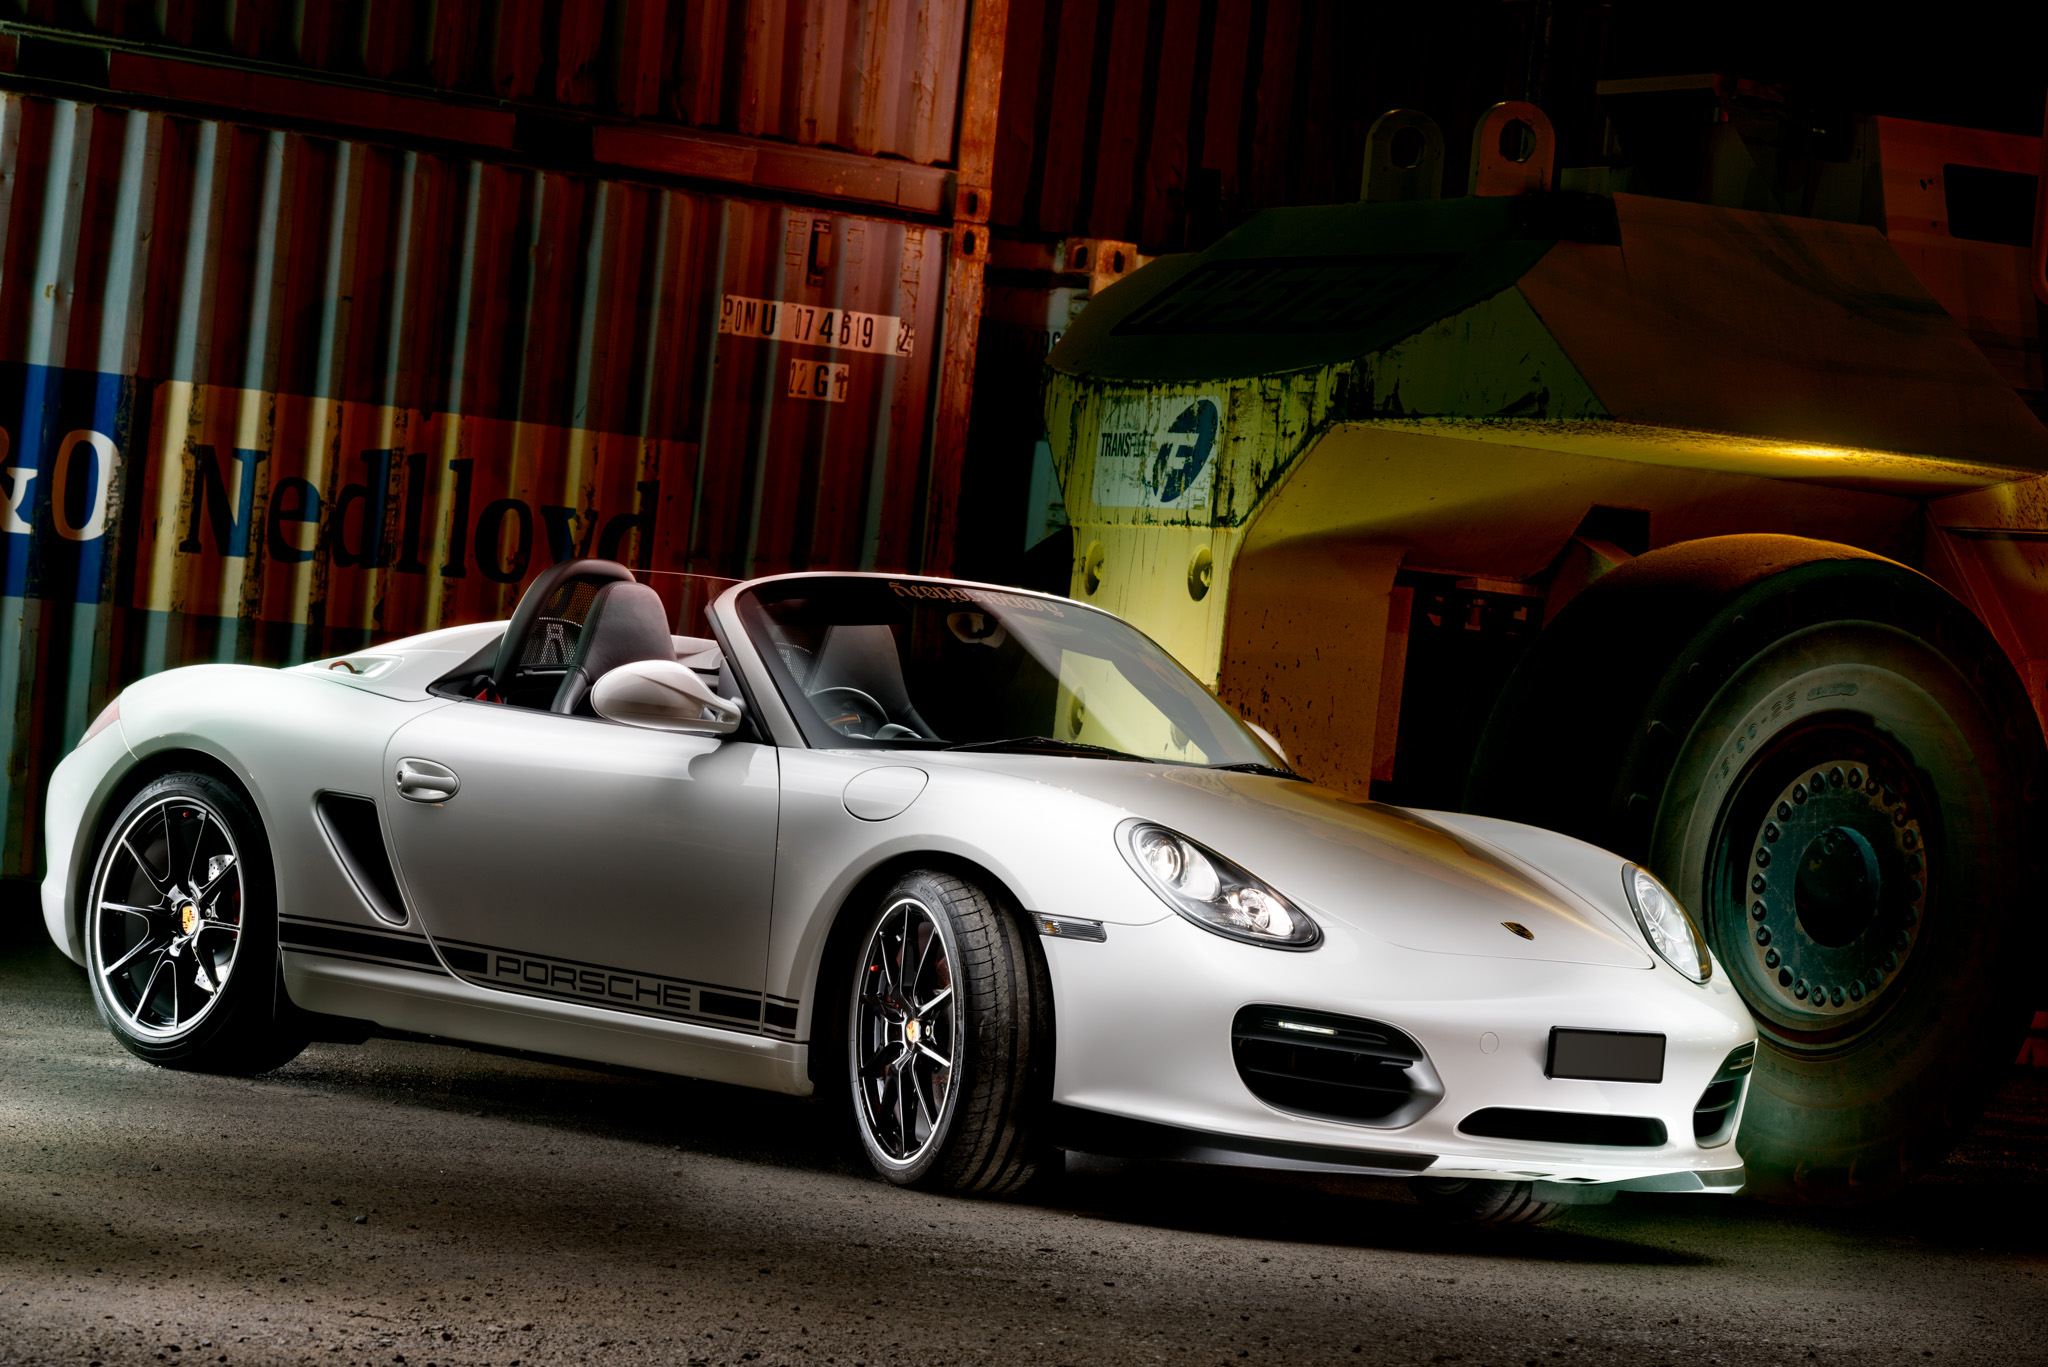 Light Painting - Porsche Boxster Spyder white